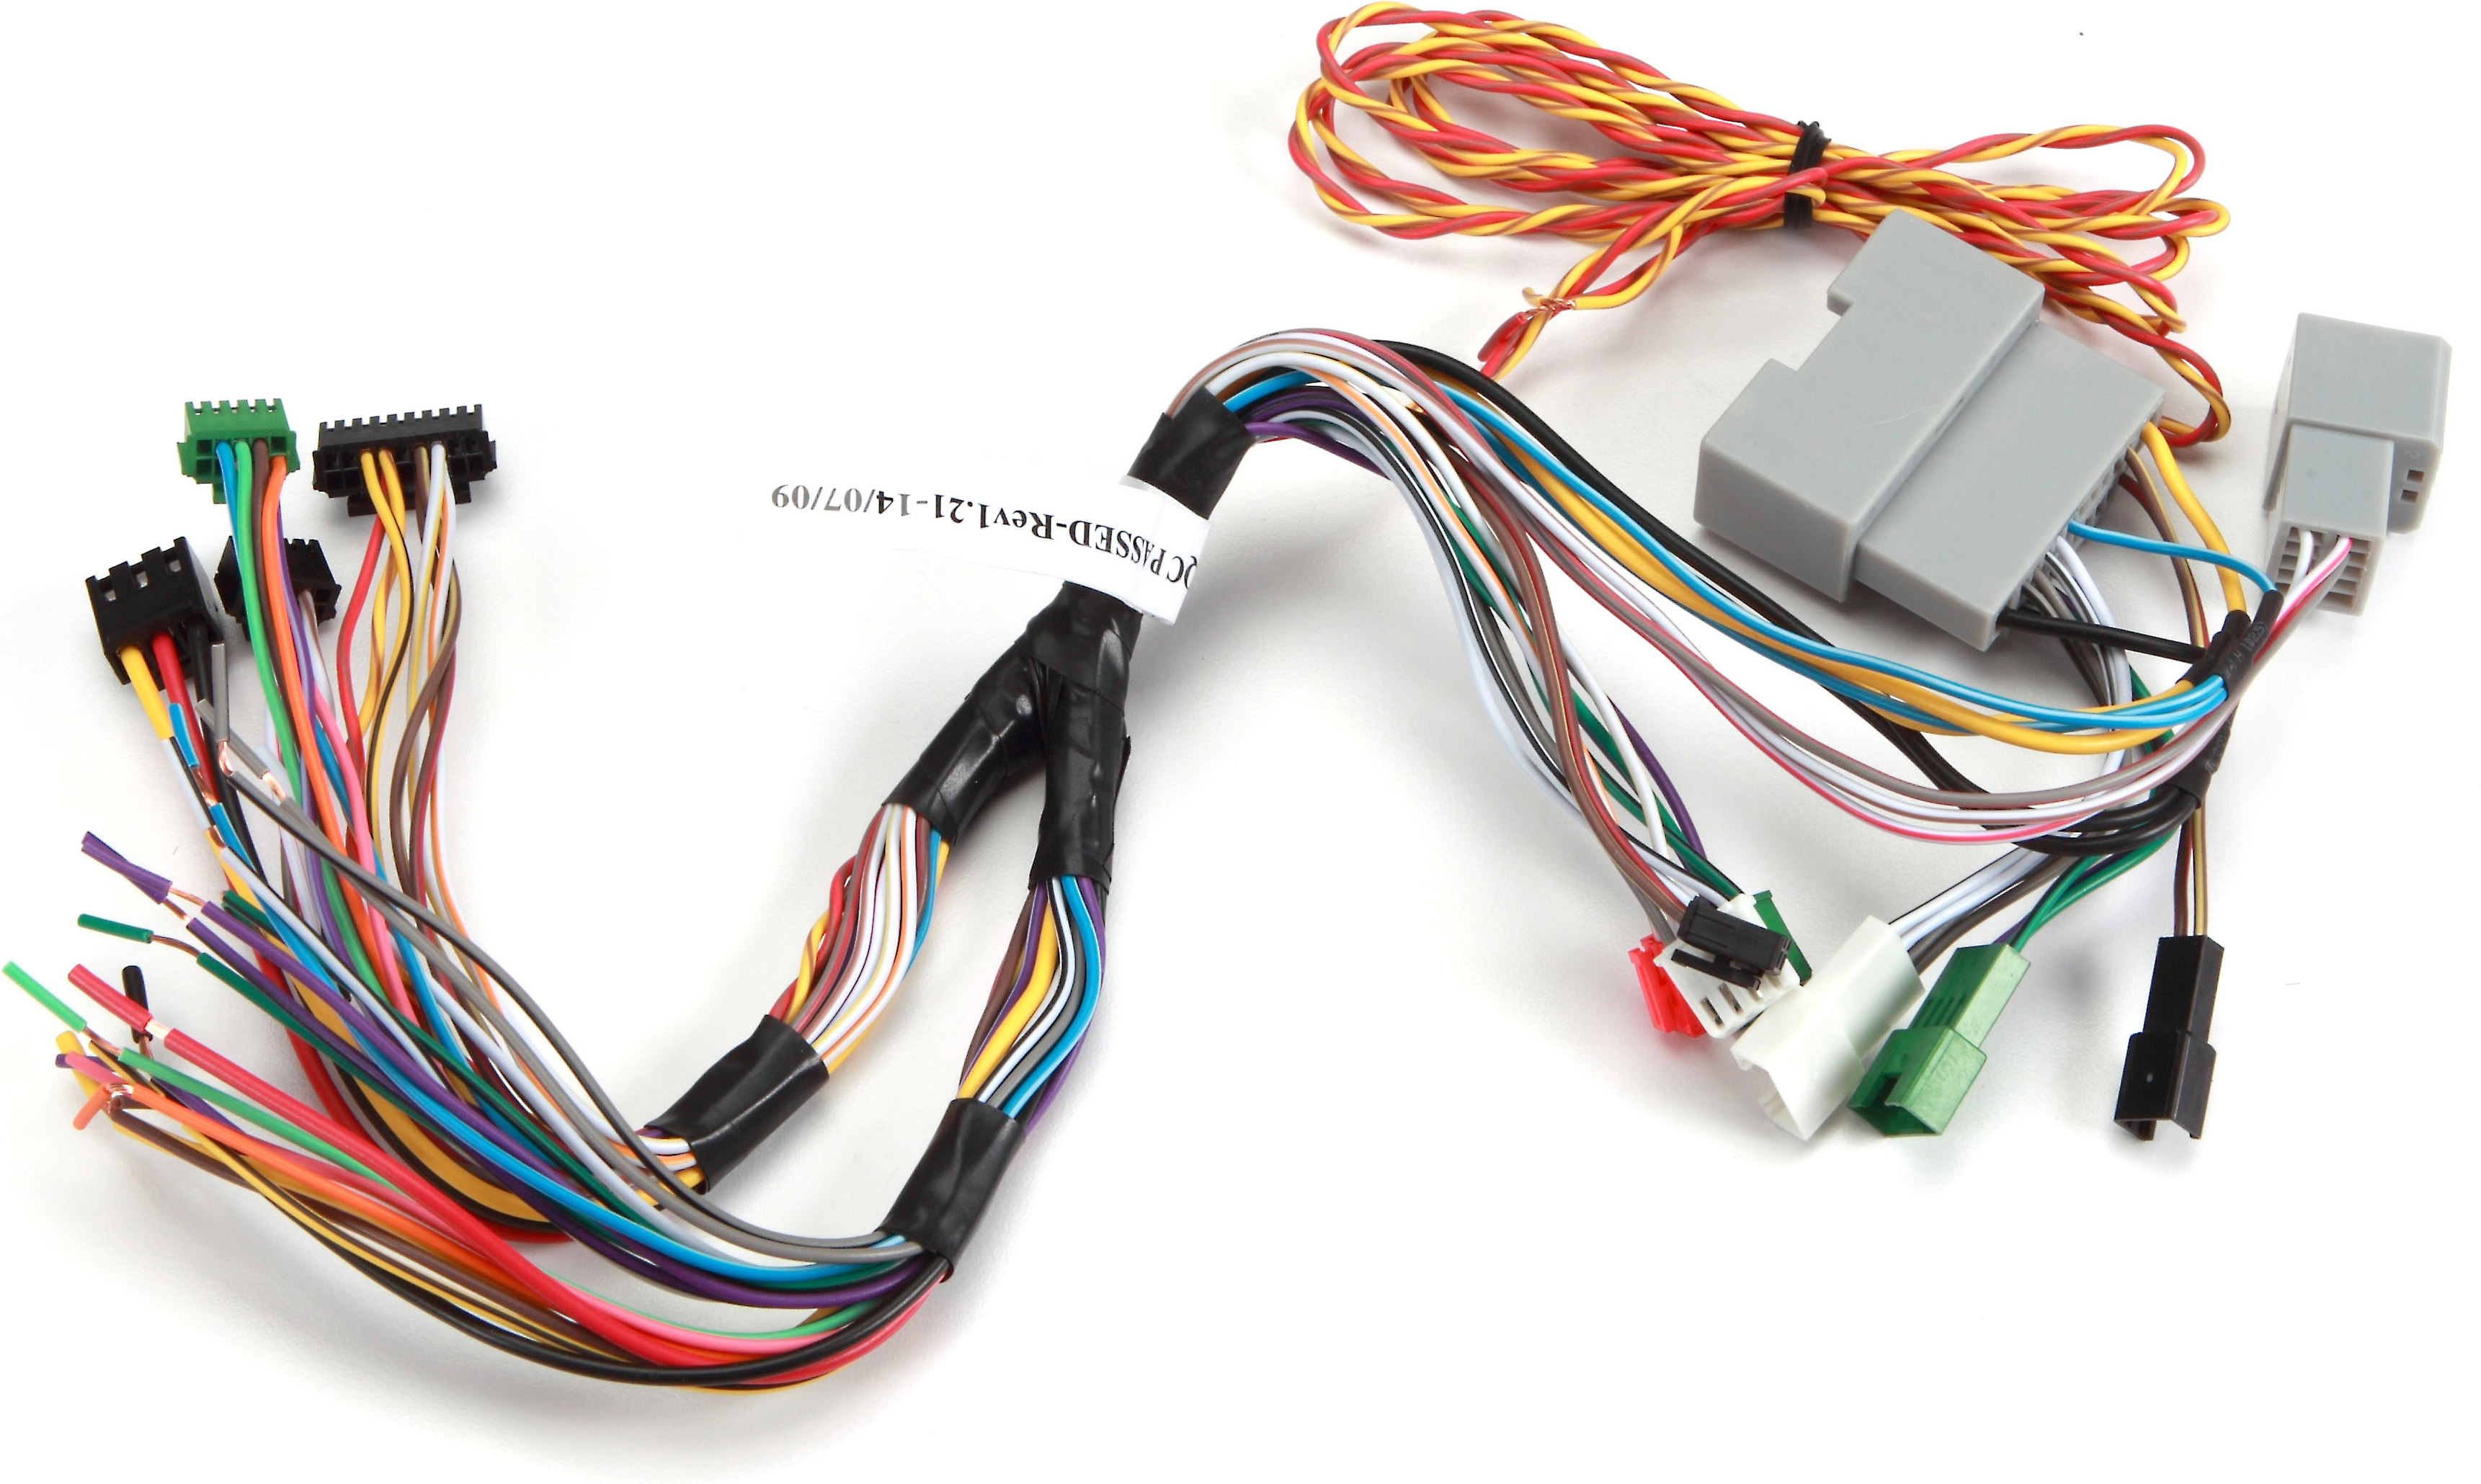 Idatalink Hrn Rr Ch1 Factory Integration Adapter Ads Mrr Module Also Required Connect A New Car Stereo And Retain Steering Wheel Controls And Factory Amp In Select 2007 Up Chrysler Made Vehicles At Crutchfield